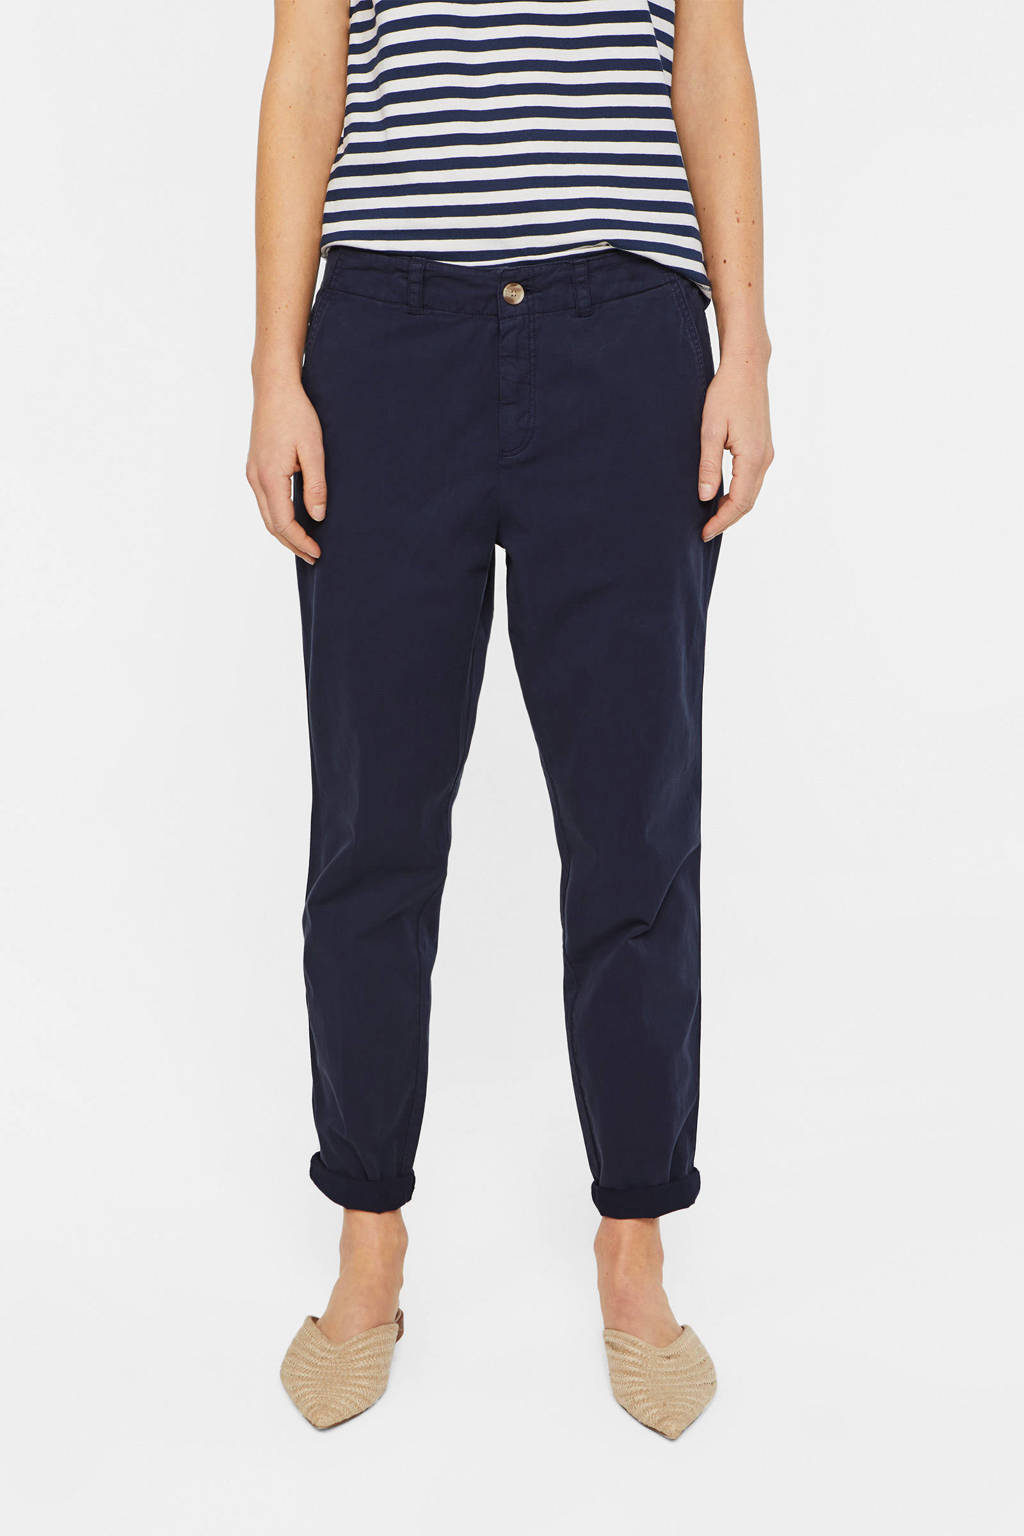 WE Fashion cropped straight fit broek donkerblauw, Donkerblauw